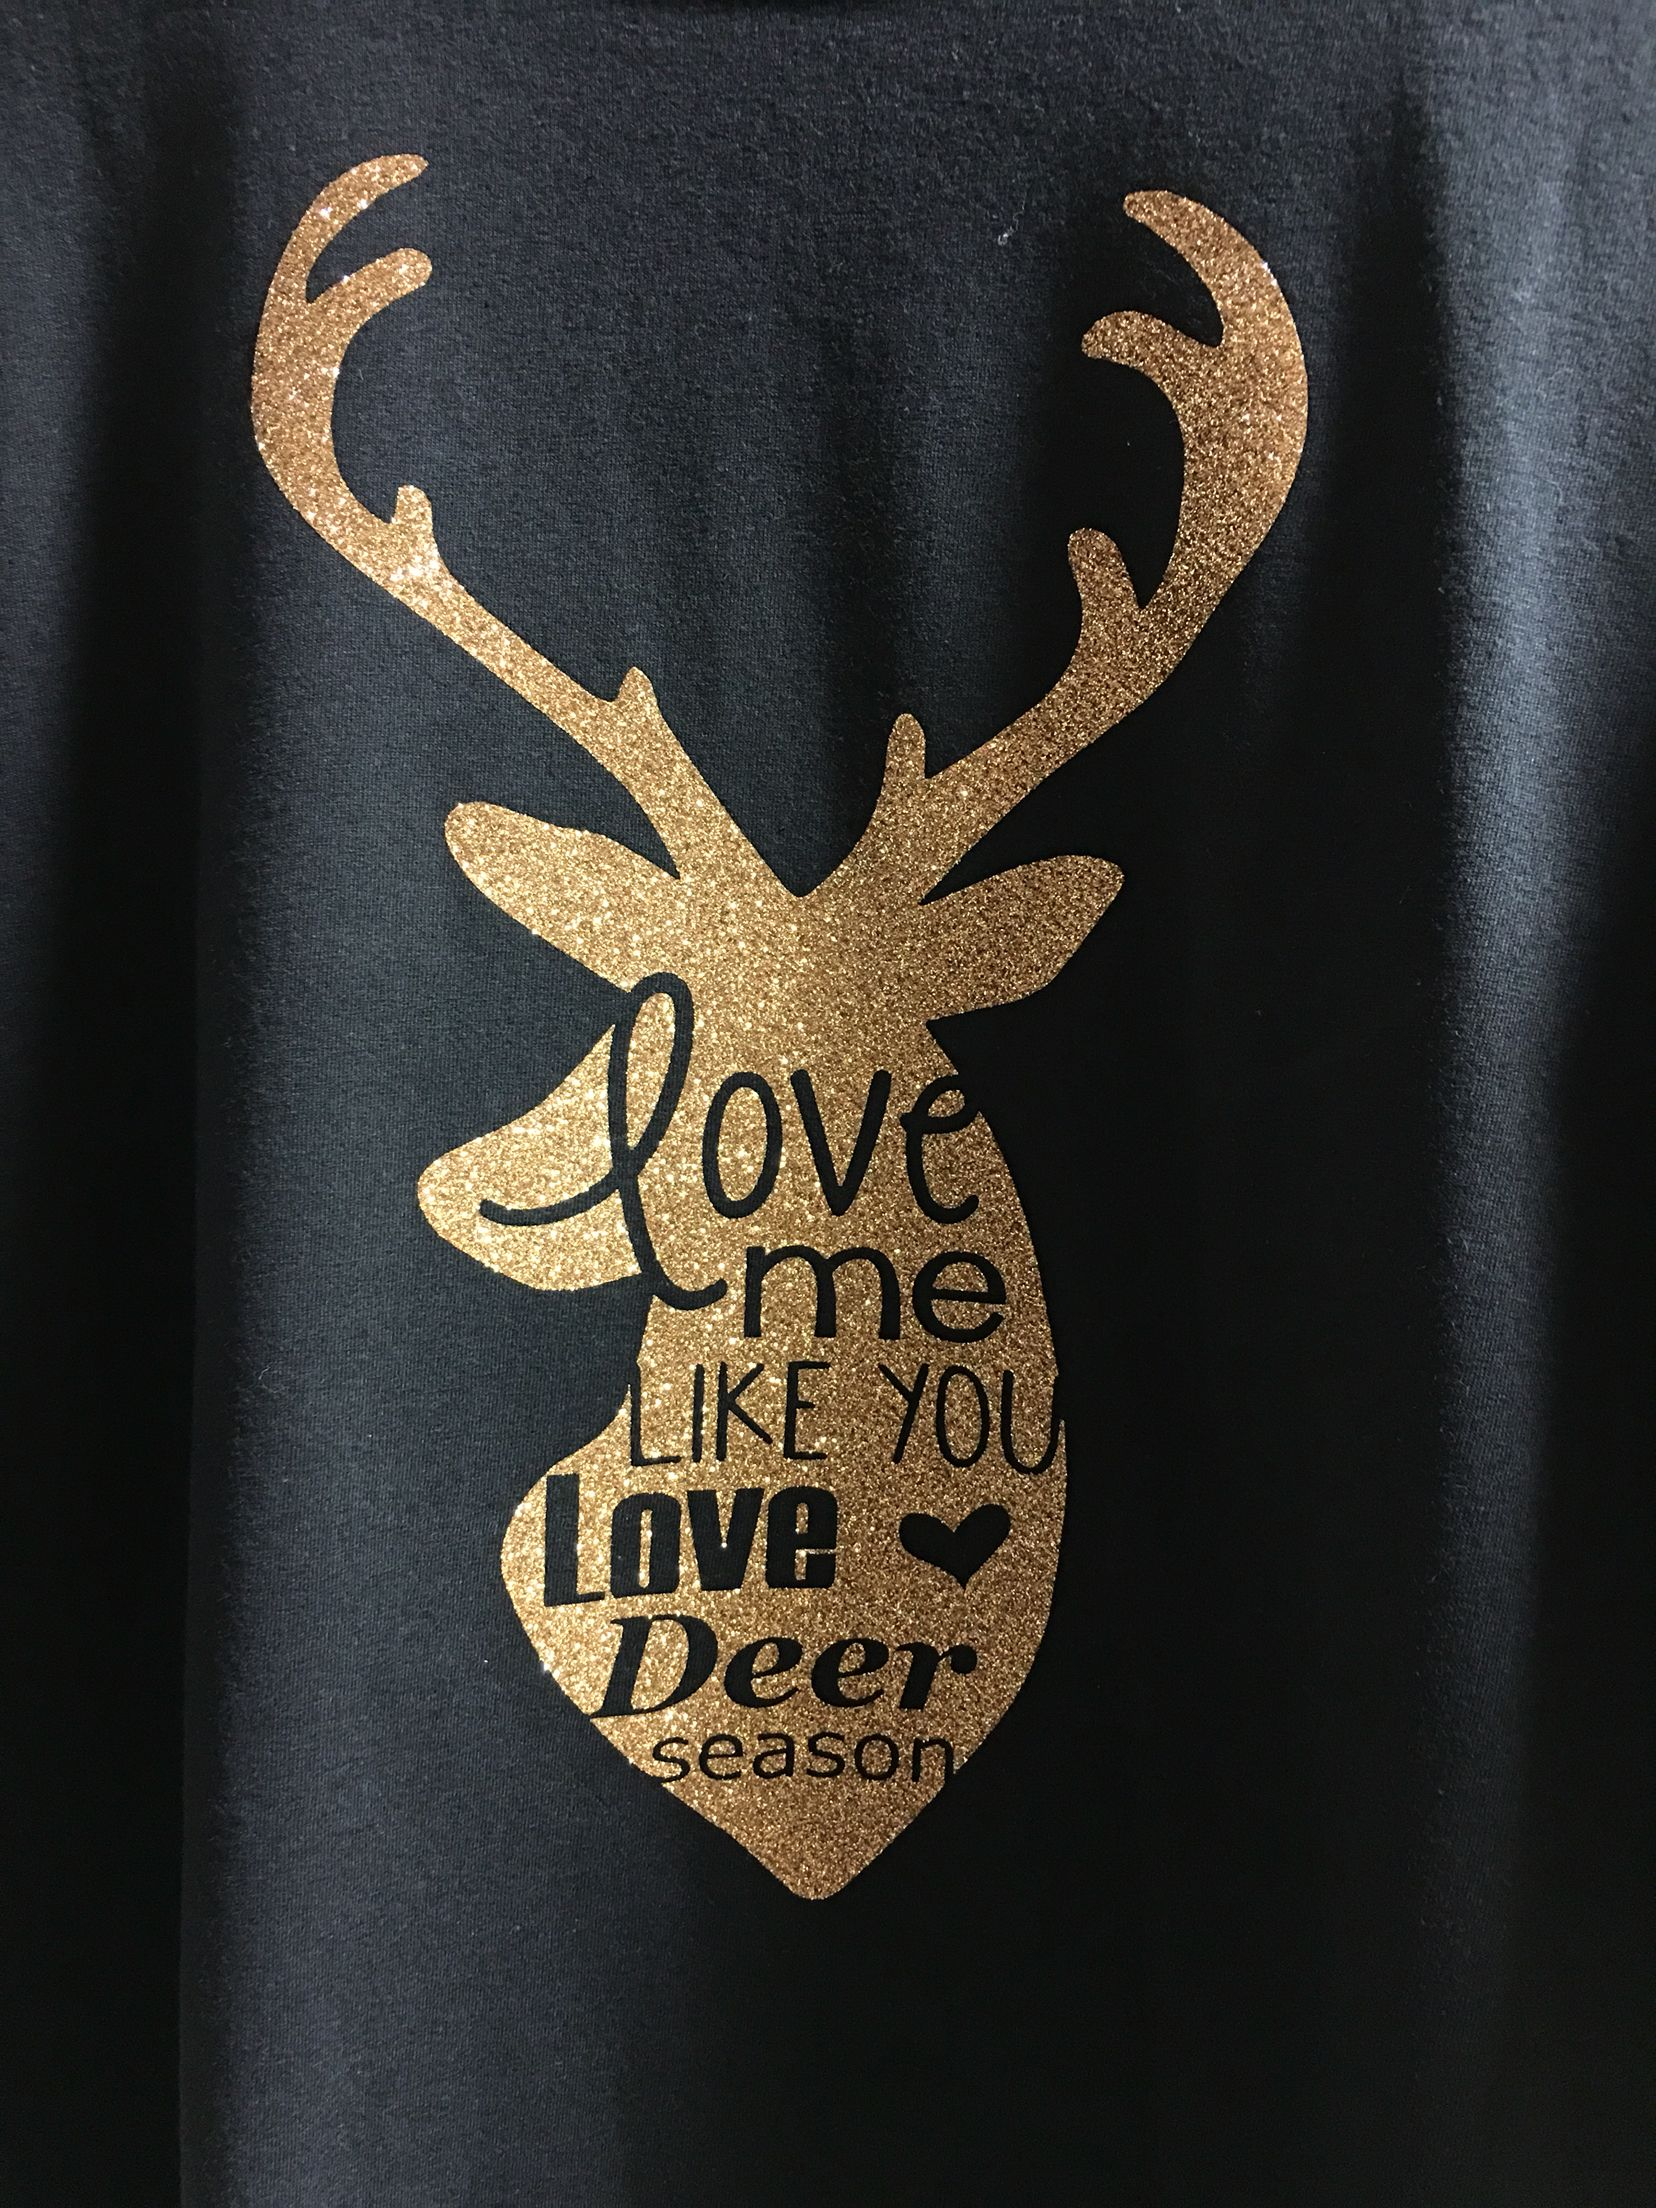 Love Me Like You Love Deer Season Vinyl Heat Transfer Gold